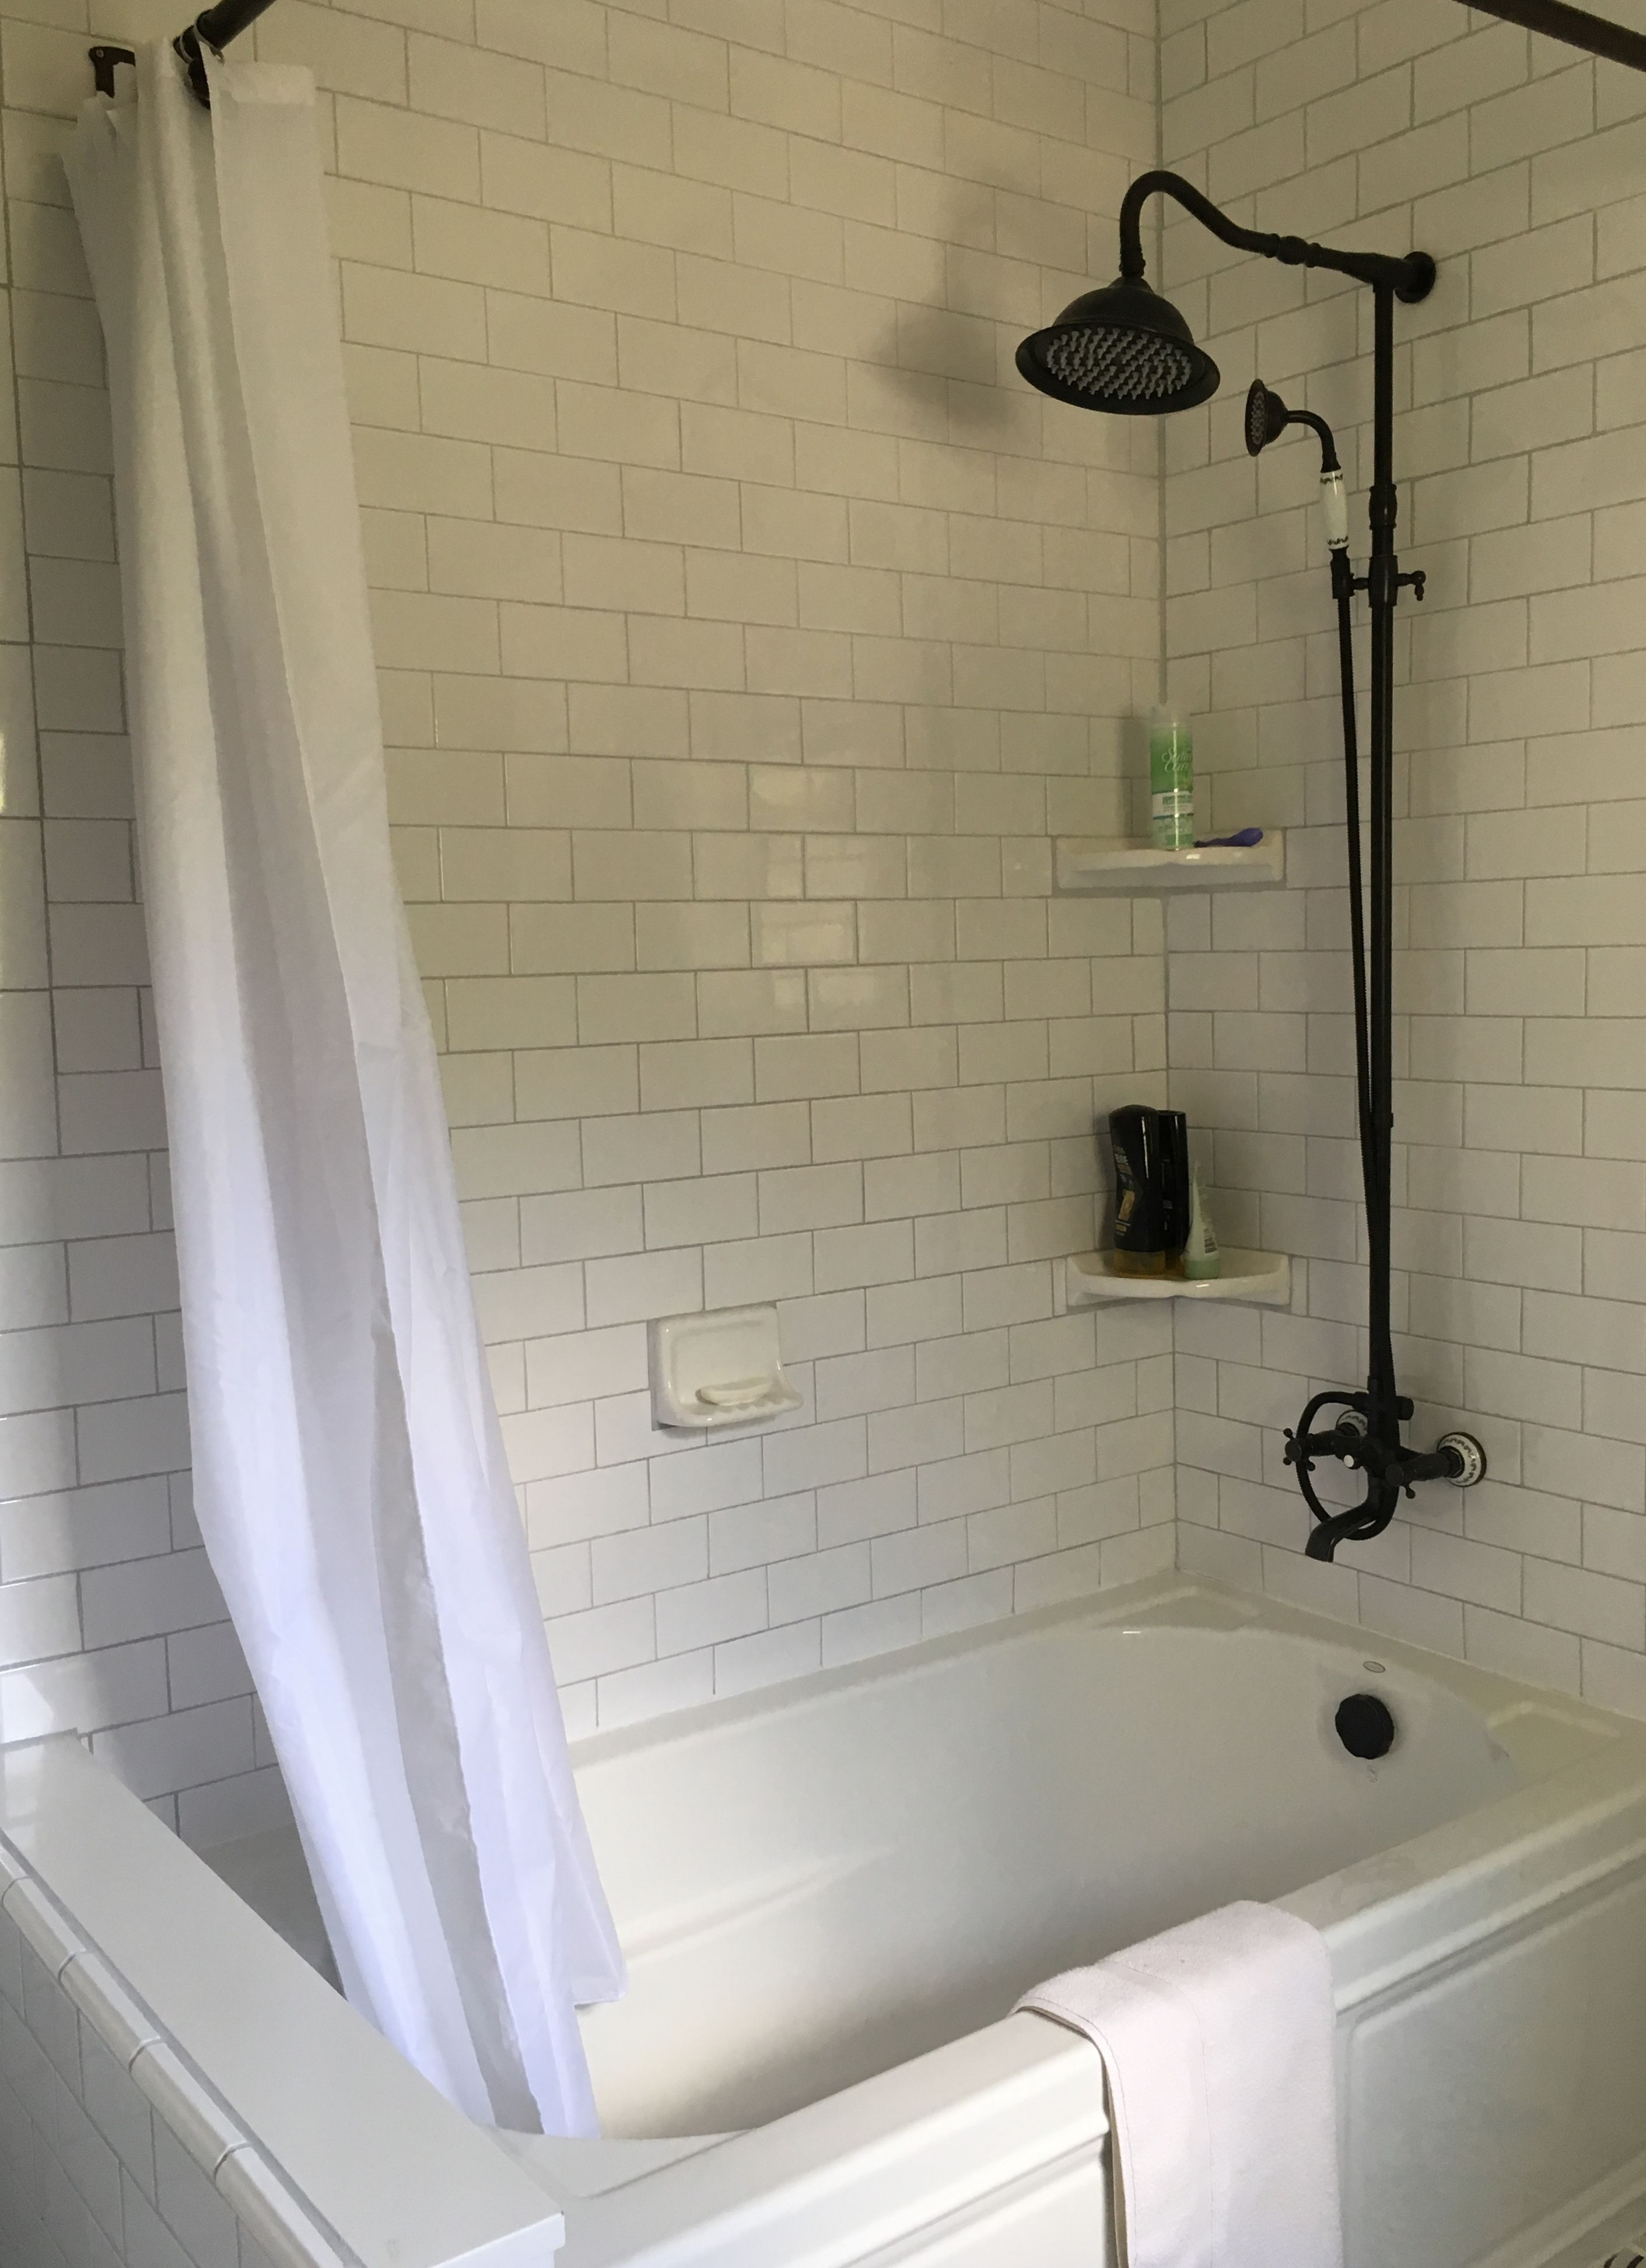 Pin By Riana Fisher On 1901 Vintage Bathroom Pinterest Ceramic